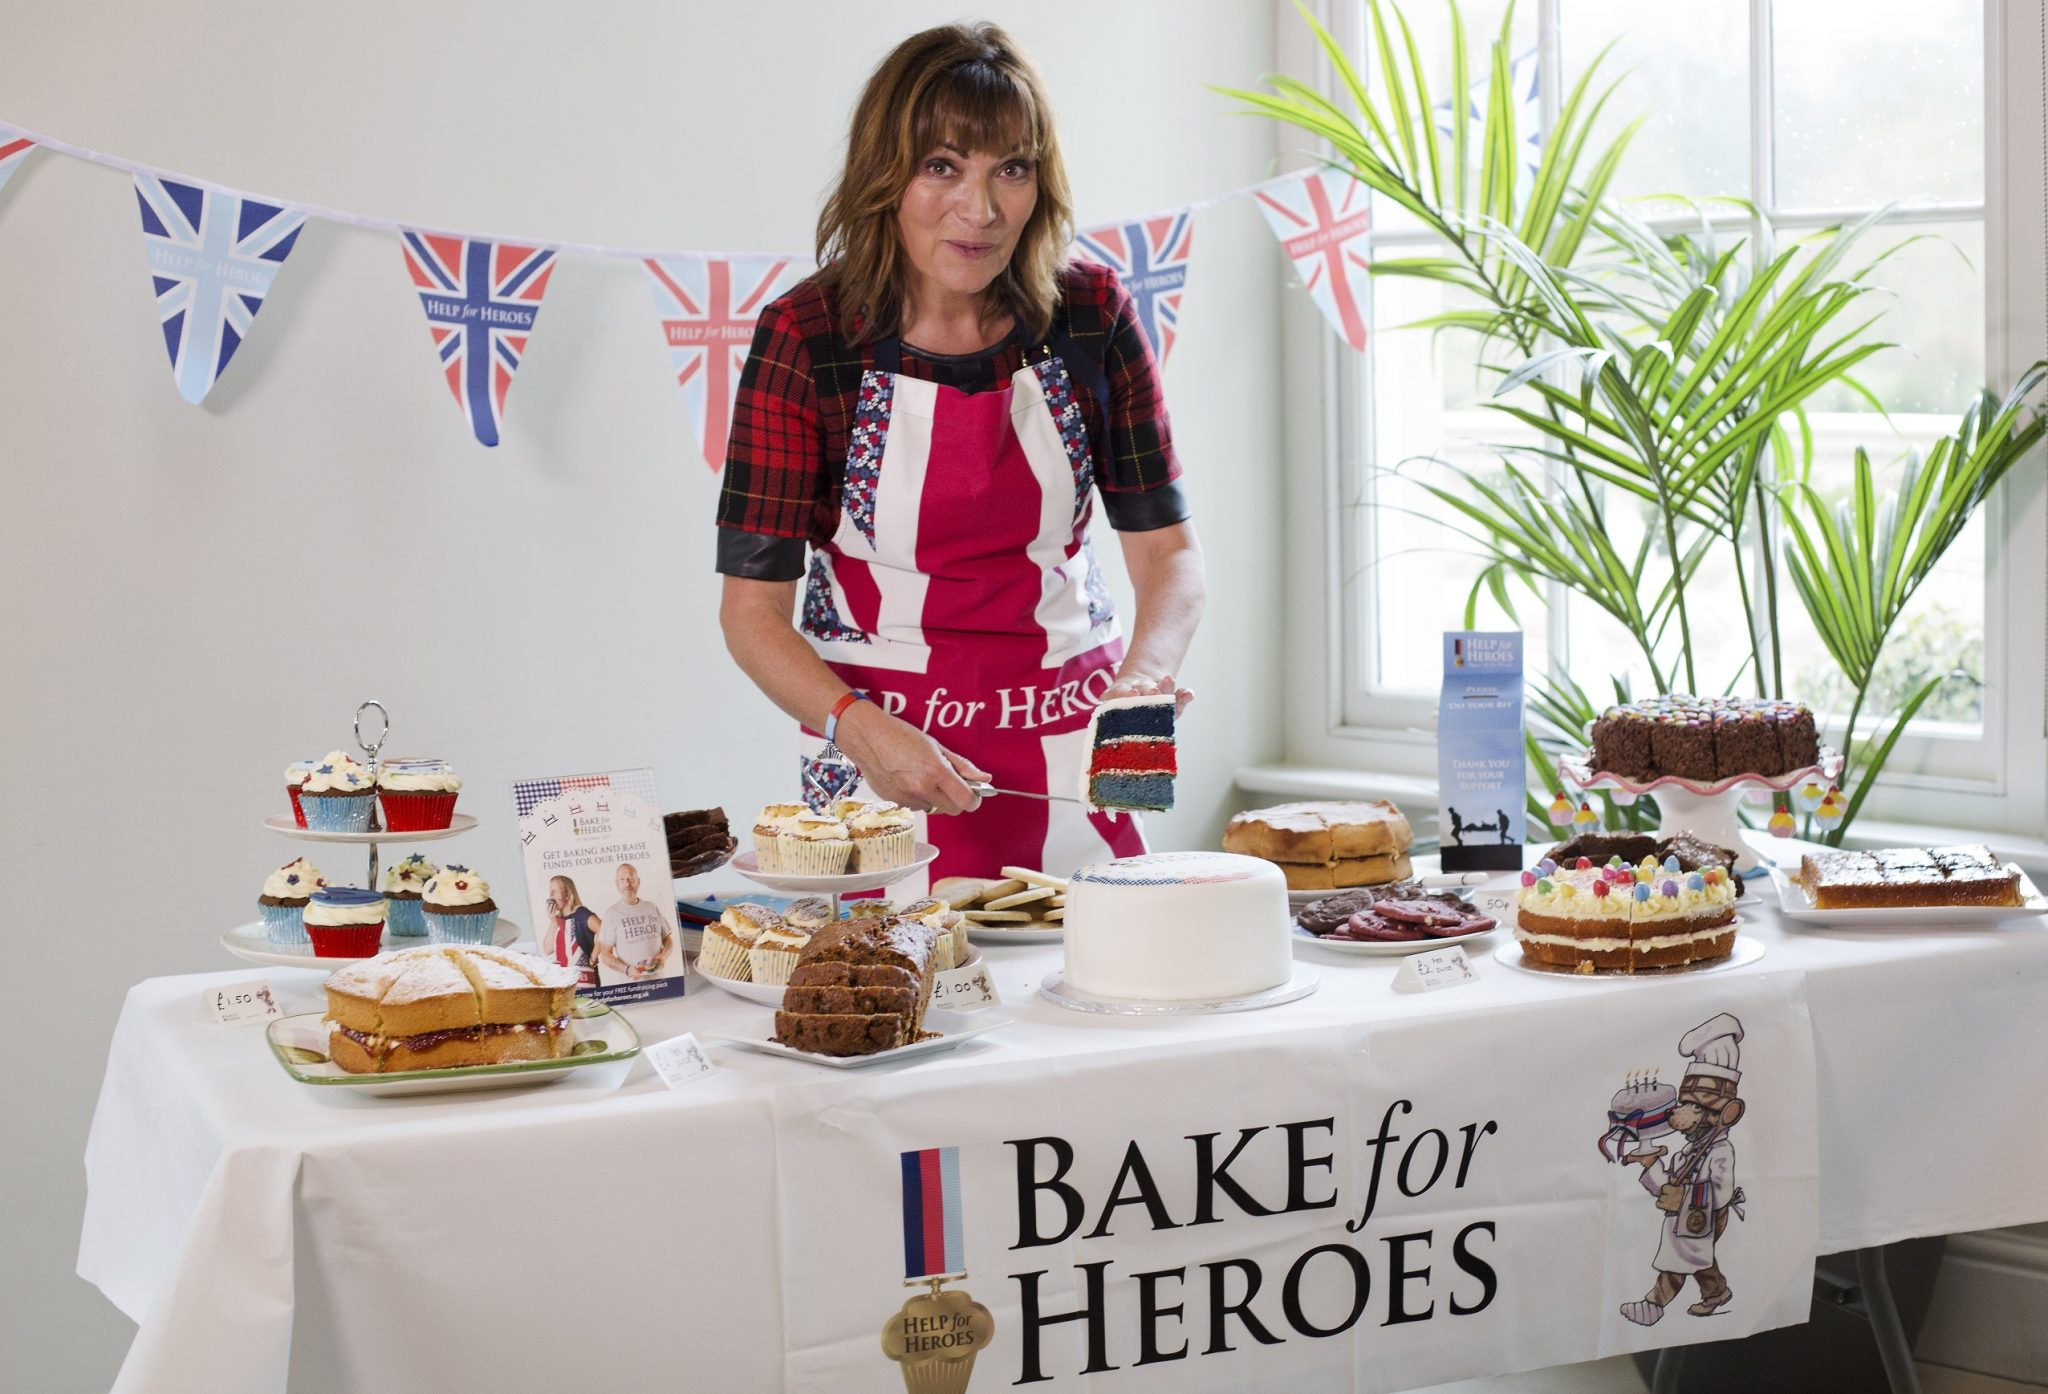 Local Romsey News | Bake for Heroes - let's make it a million! | Andover & Villages